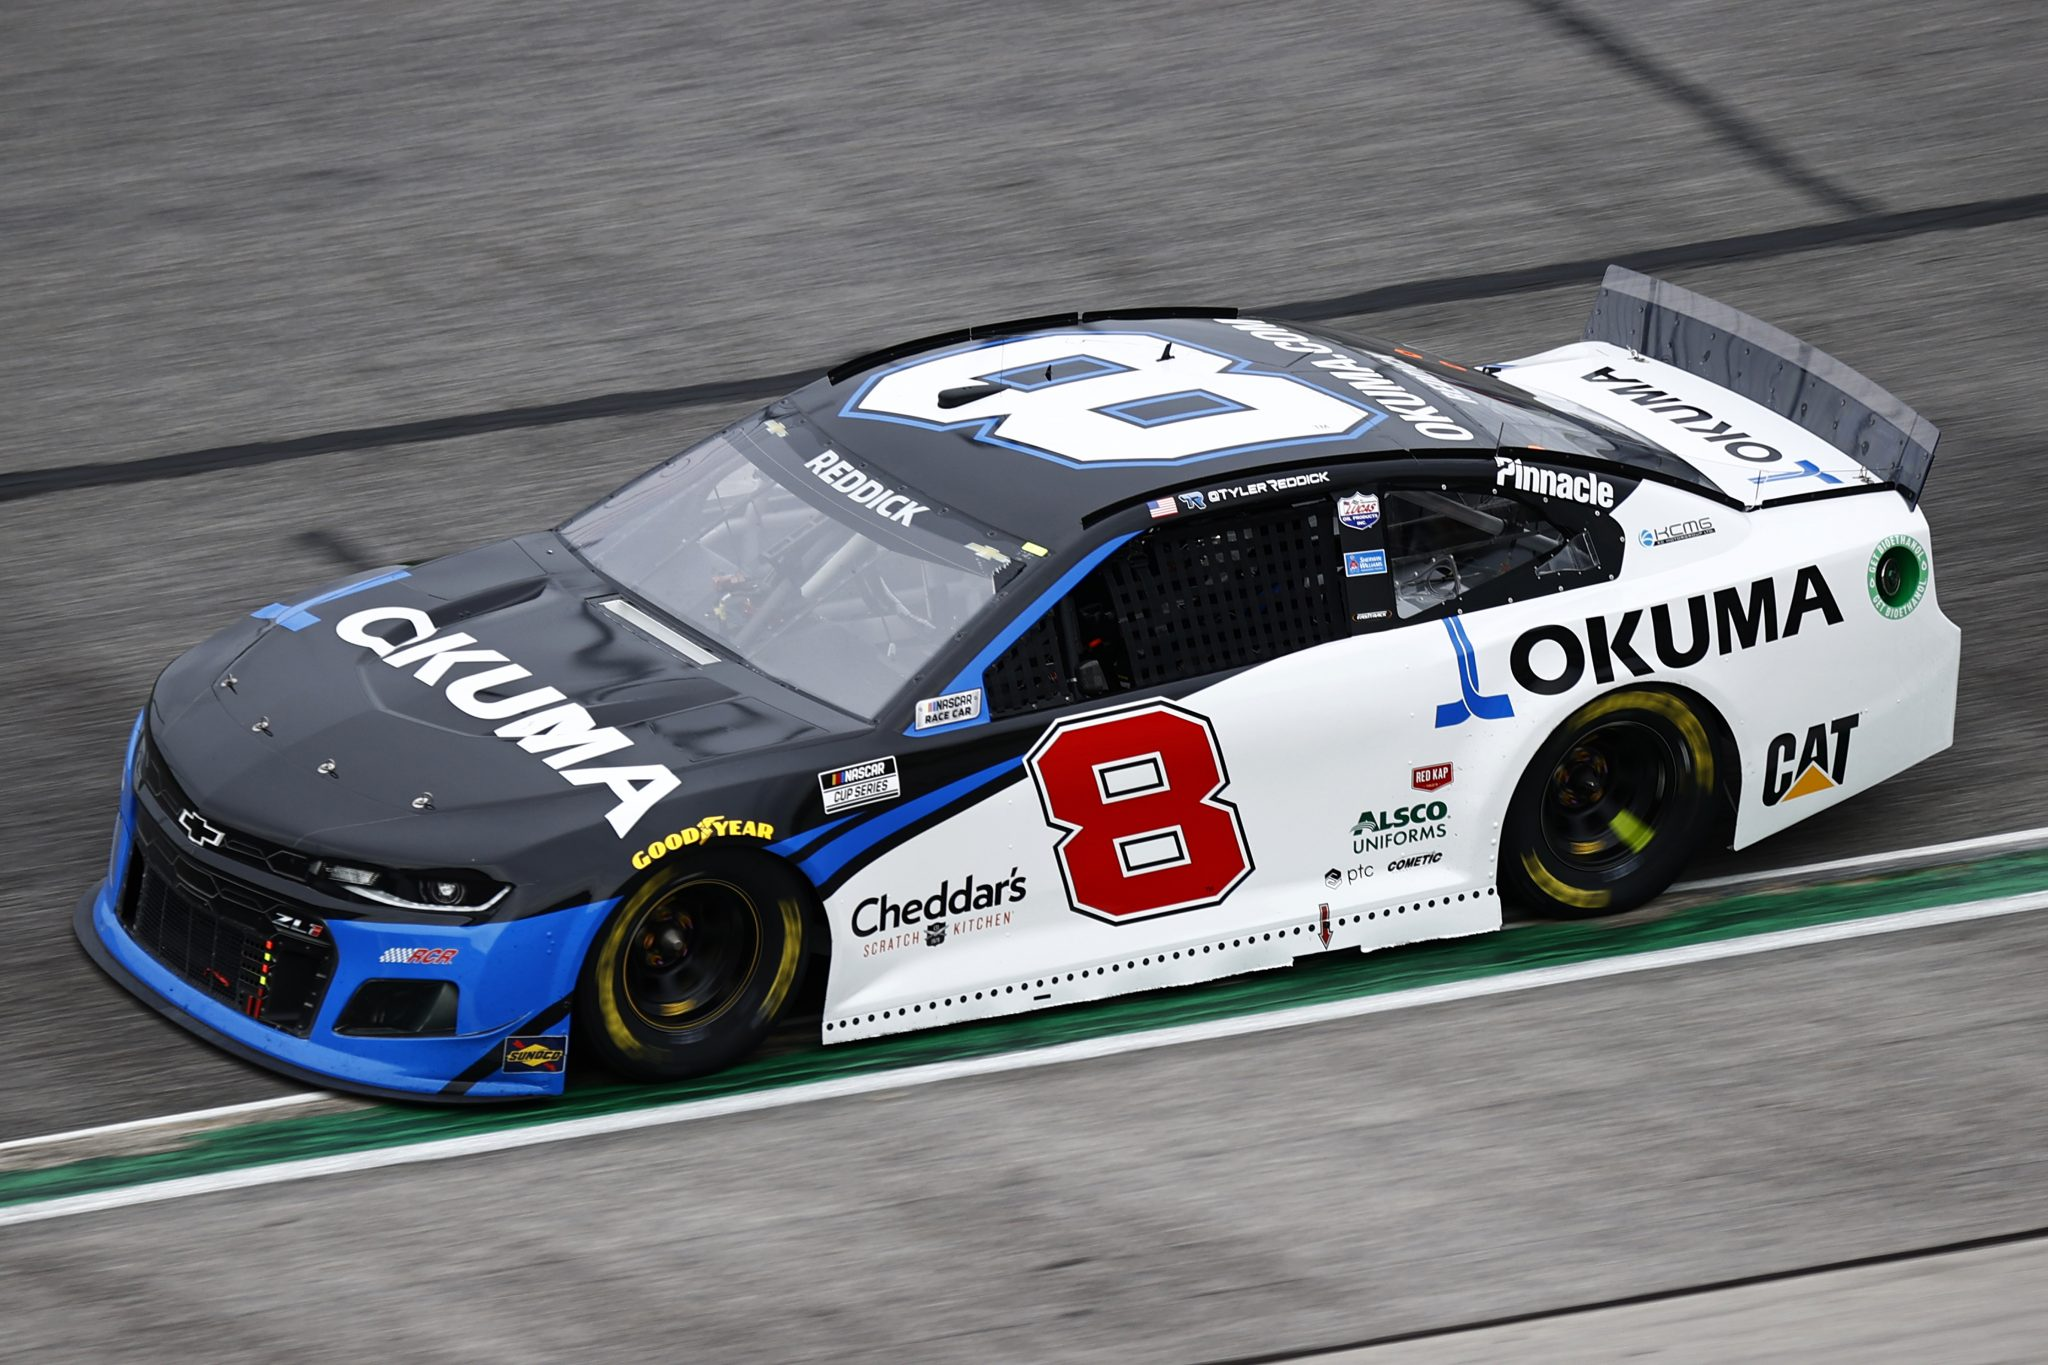 HAMPTON, GEORGIA - JULY 11: Tyler Reddick, driver of the #8 Okuma Chevrolet, drives during the NASCAR Cup Series Quaker State 400 presented by Walmart at Atlanta Motor Speedway on July 11, 2021 in Hampton, Georgia. (Photo by Jared C. Tilton/Getty Images)   Getty Images